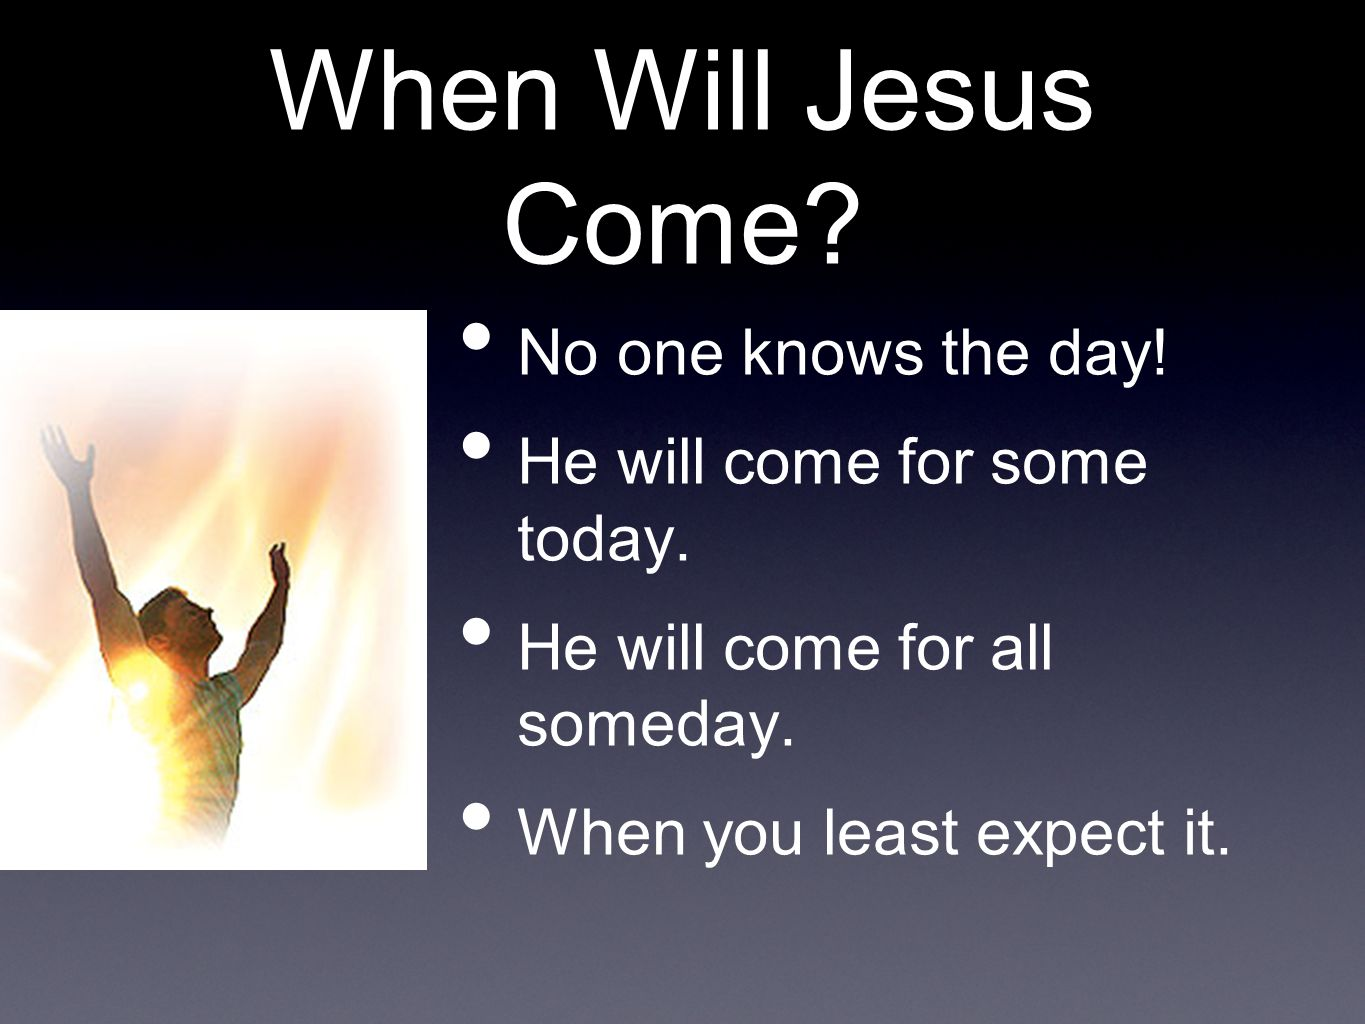 When Will Jesus Come. No one knows the day. He will come for some today.